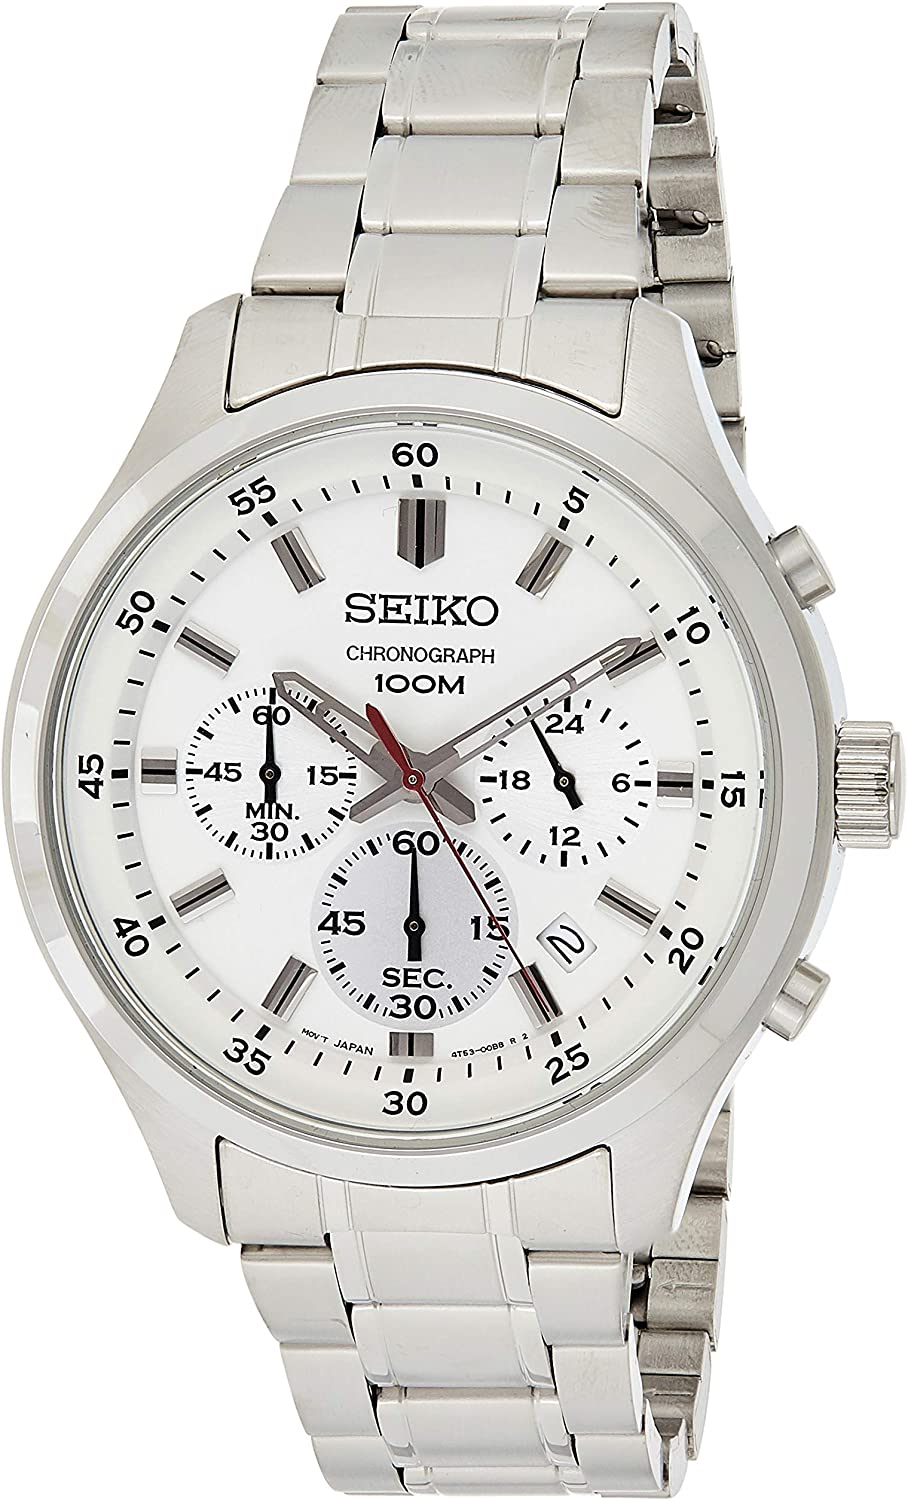 SEIKO- CHRONOGRAPH GENTS WHITE DIAL STAINLESS STEEL BRACELET WATCH